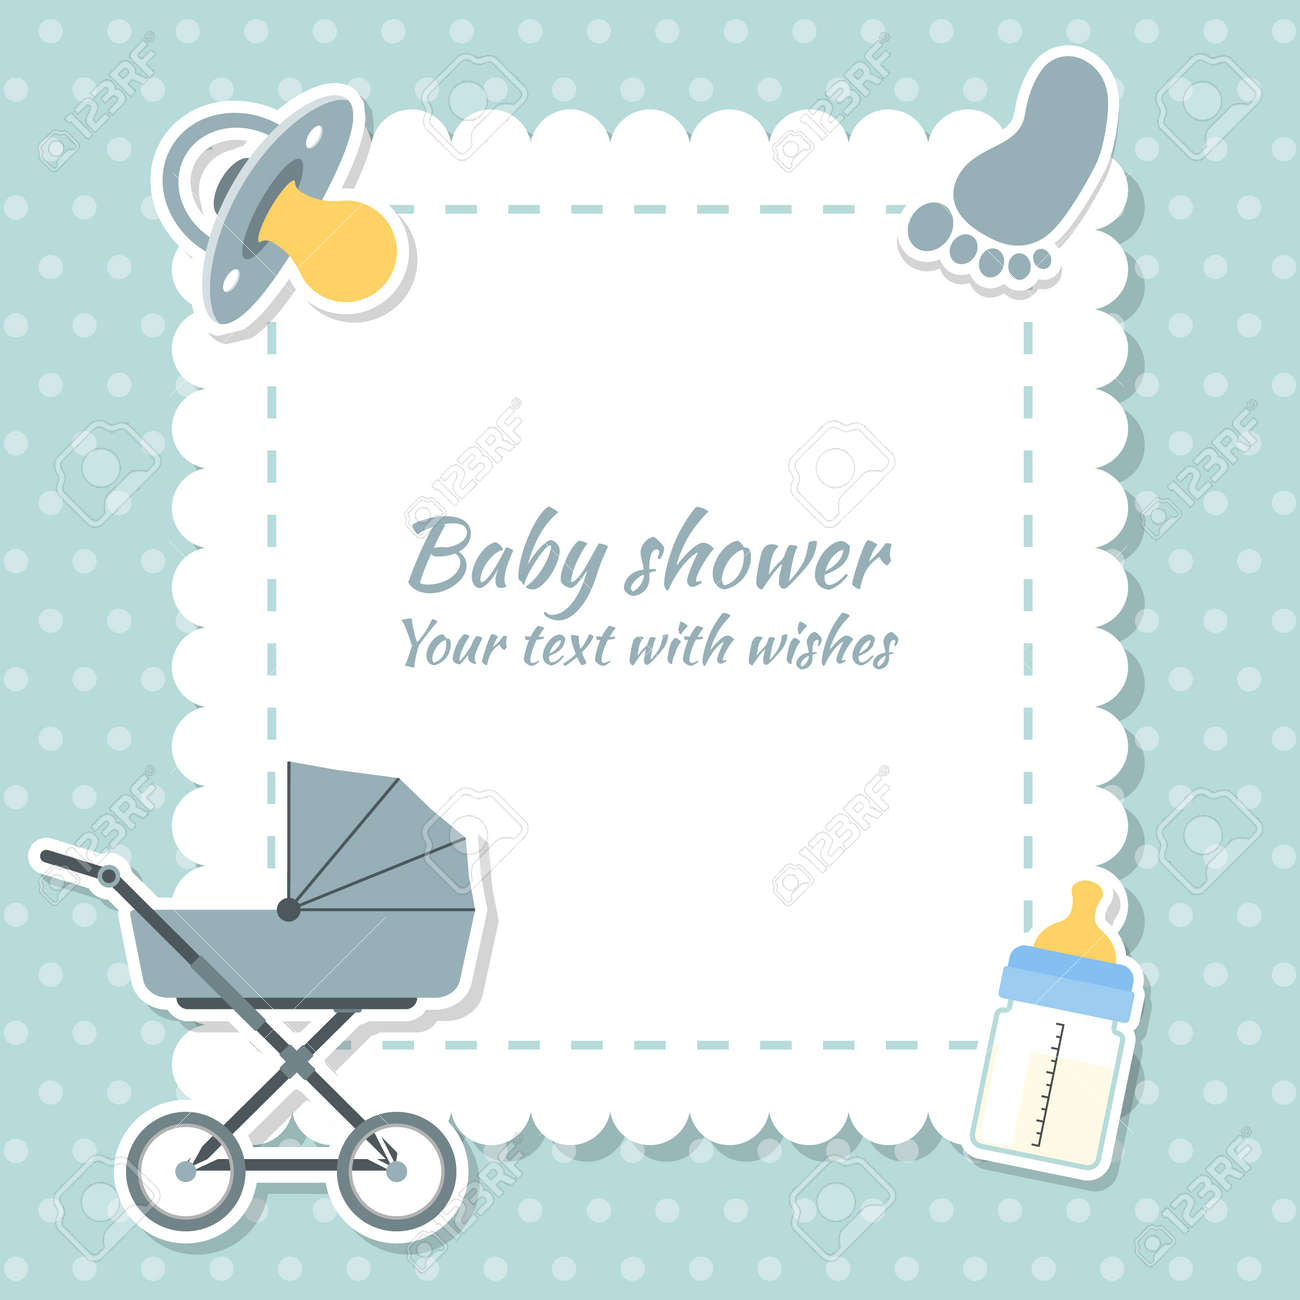 Baby shower boy invitation card place for text greeting cards baby shower boy invitation card place for text greeting cards stock vector m4hsunfo